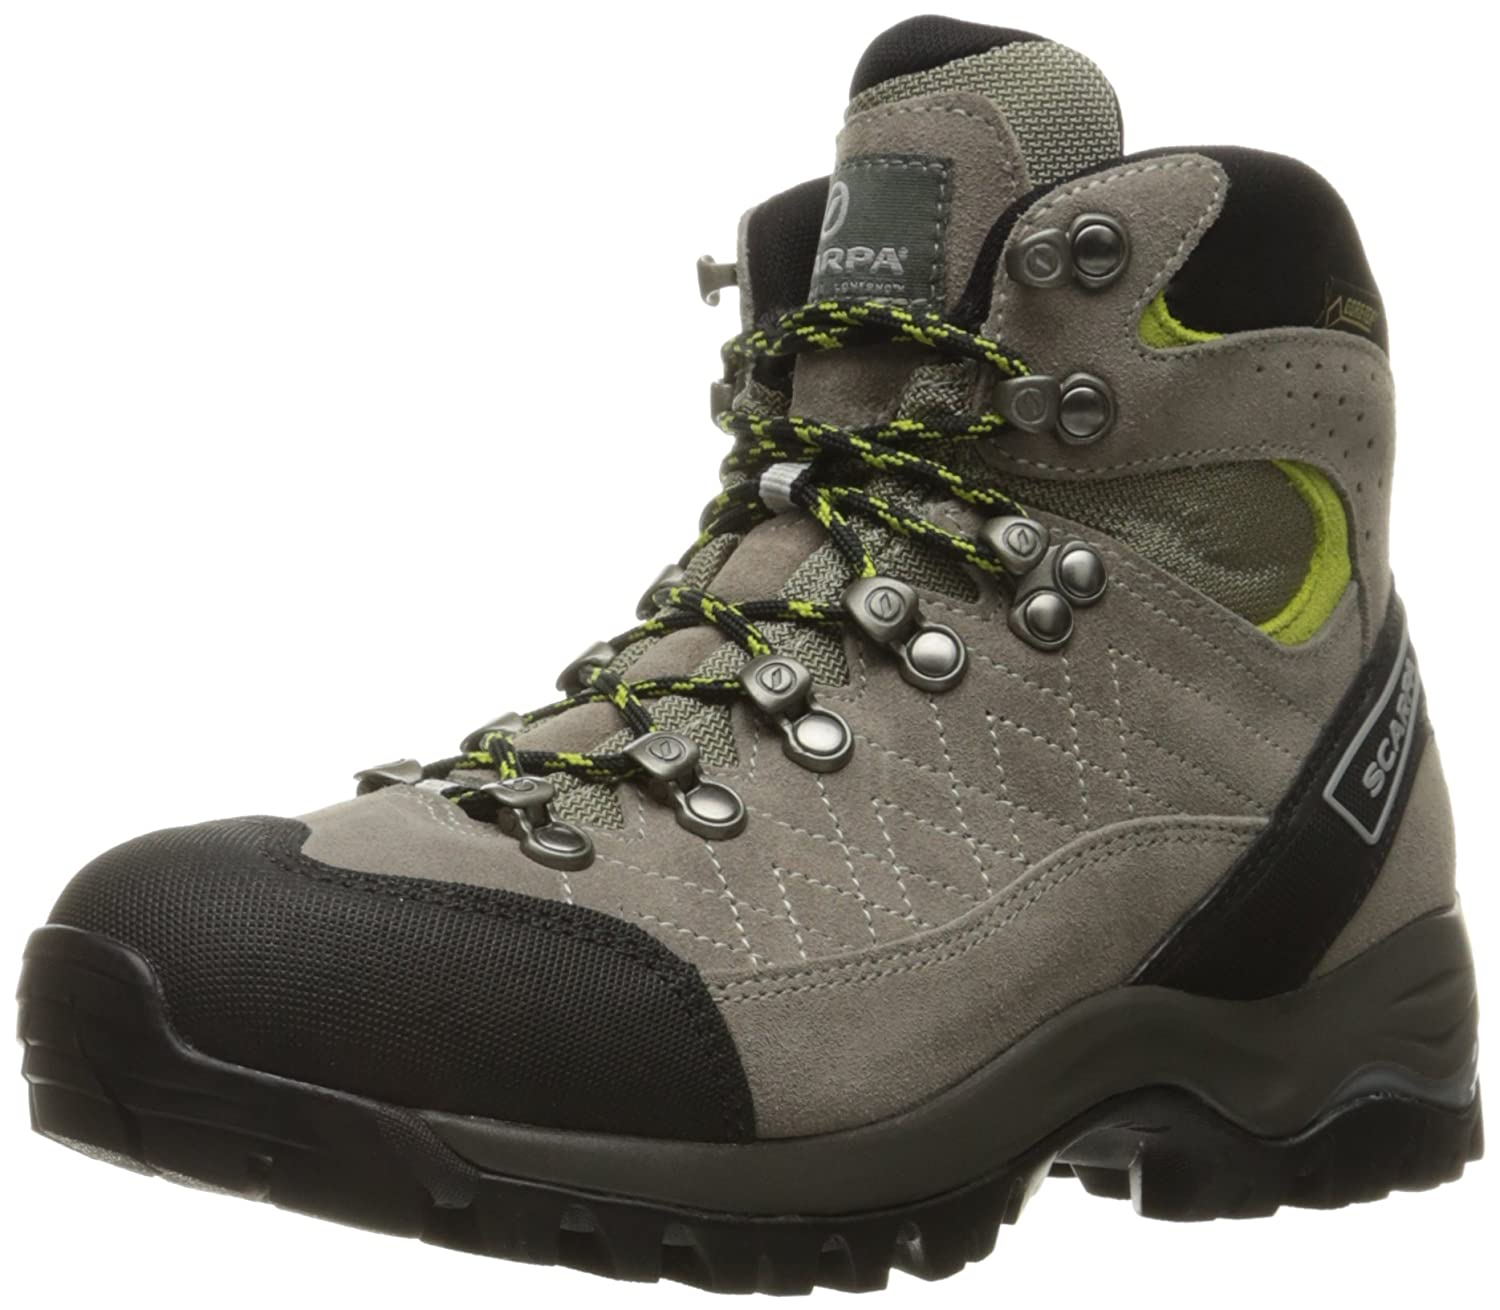 SCARPA Women's Kailash Gore-TEX Hiking Boot B00LM6O3EU 40.5 EU/8 2/3 M US|Taupe/Acid